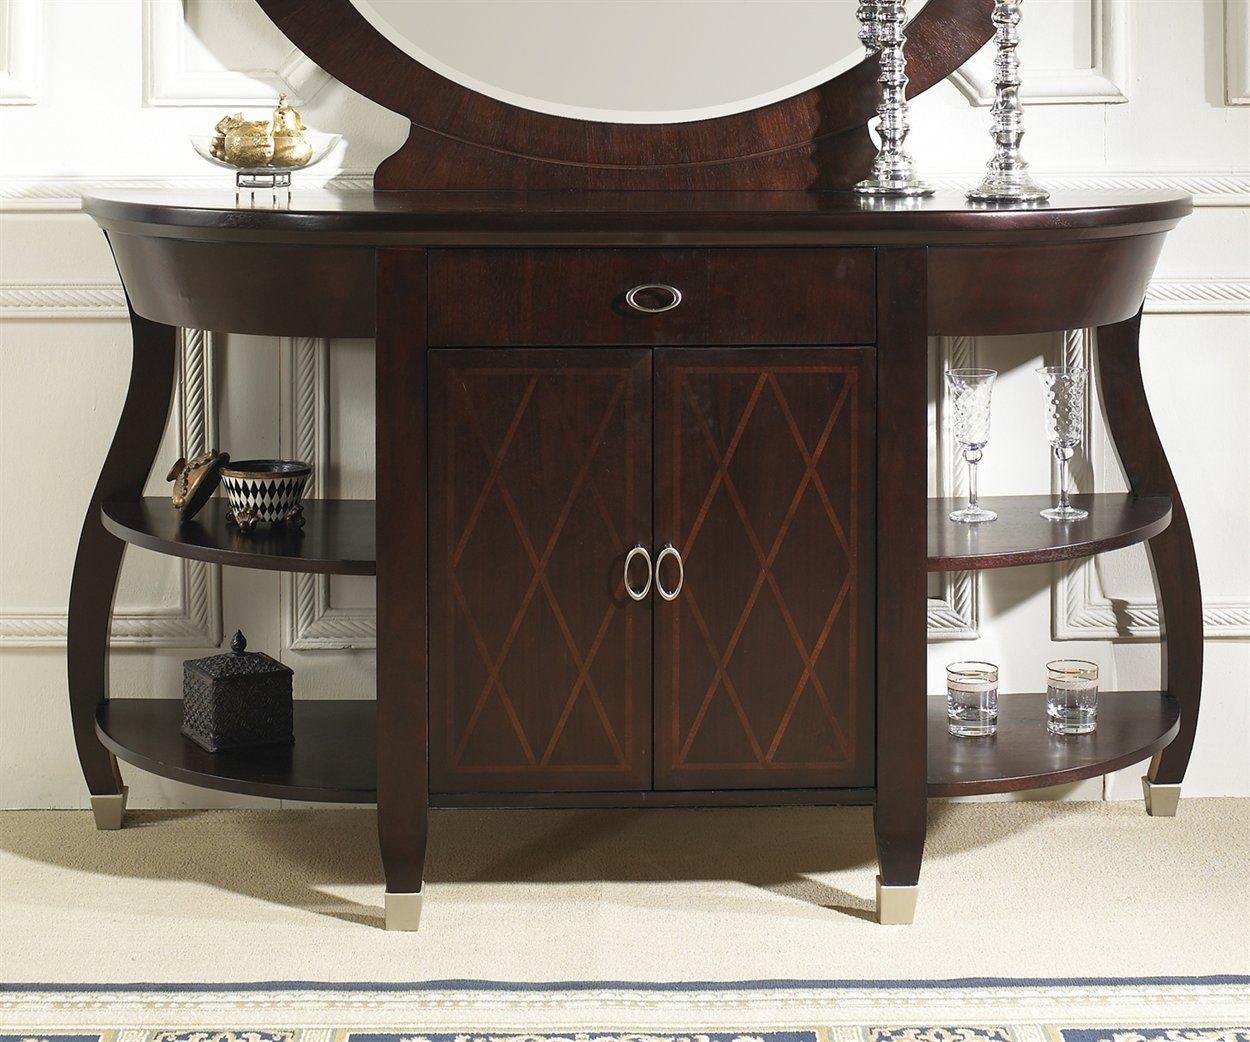 contemporary furniture   furniture modern contemporary furniture Walnut  brown buffet furniture. contemporary furniture   furniture modern contemporary furniture